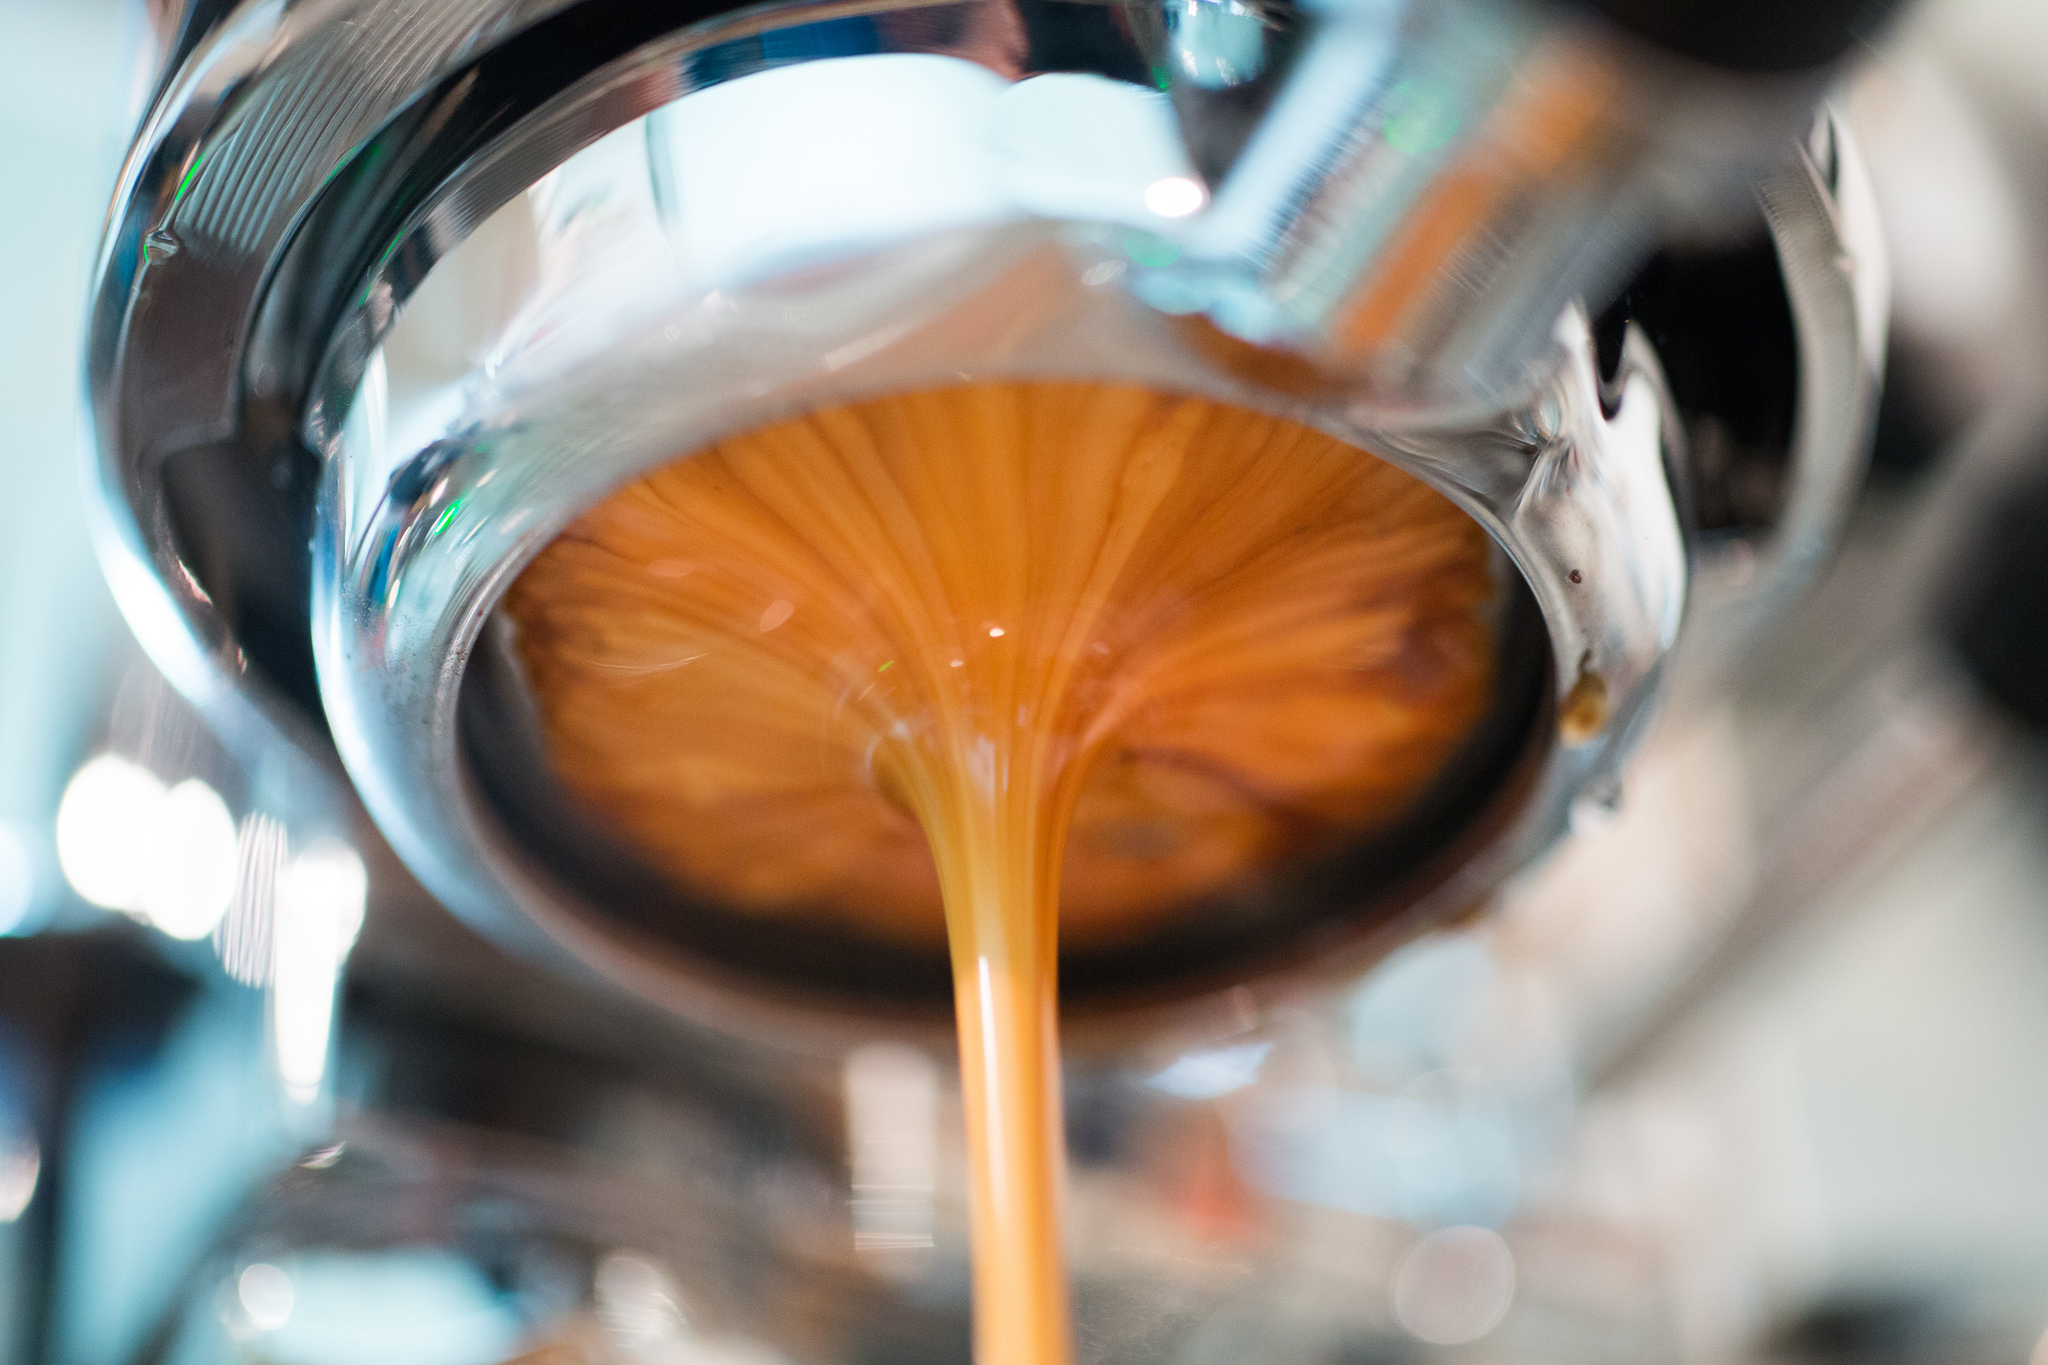 Espresso extraction | © Scott Schiller/Flickr